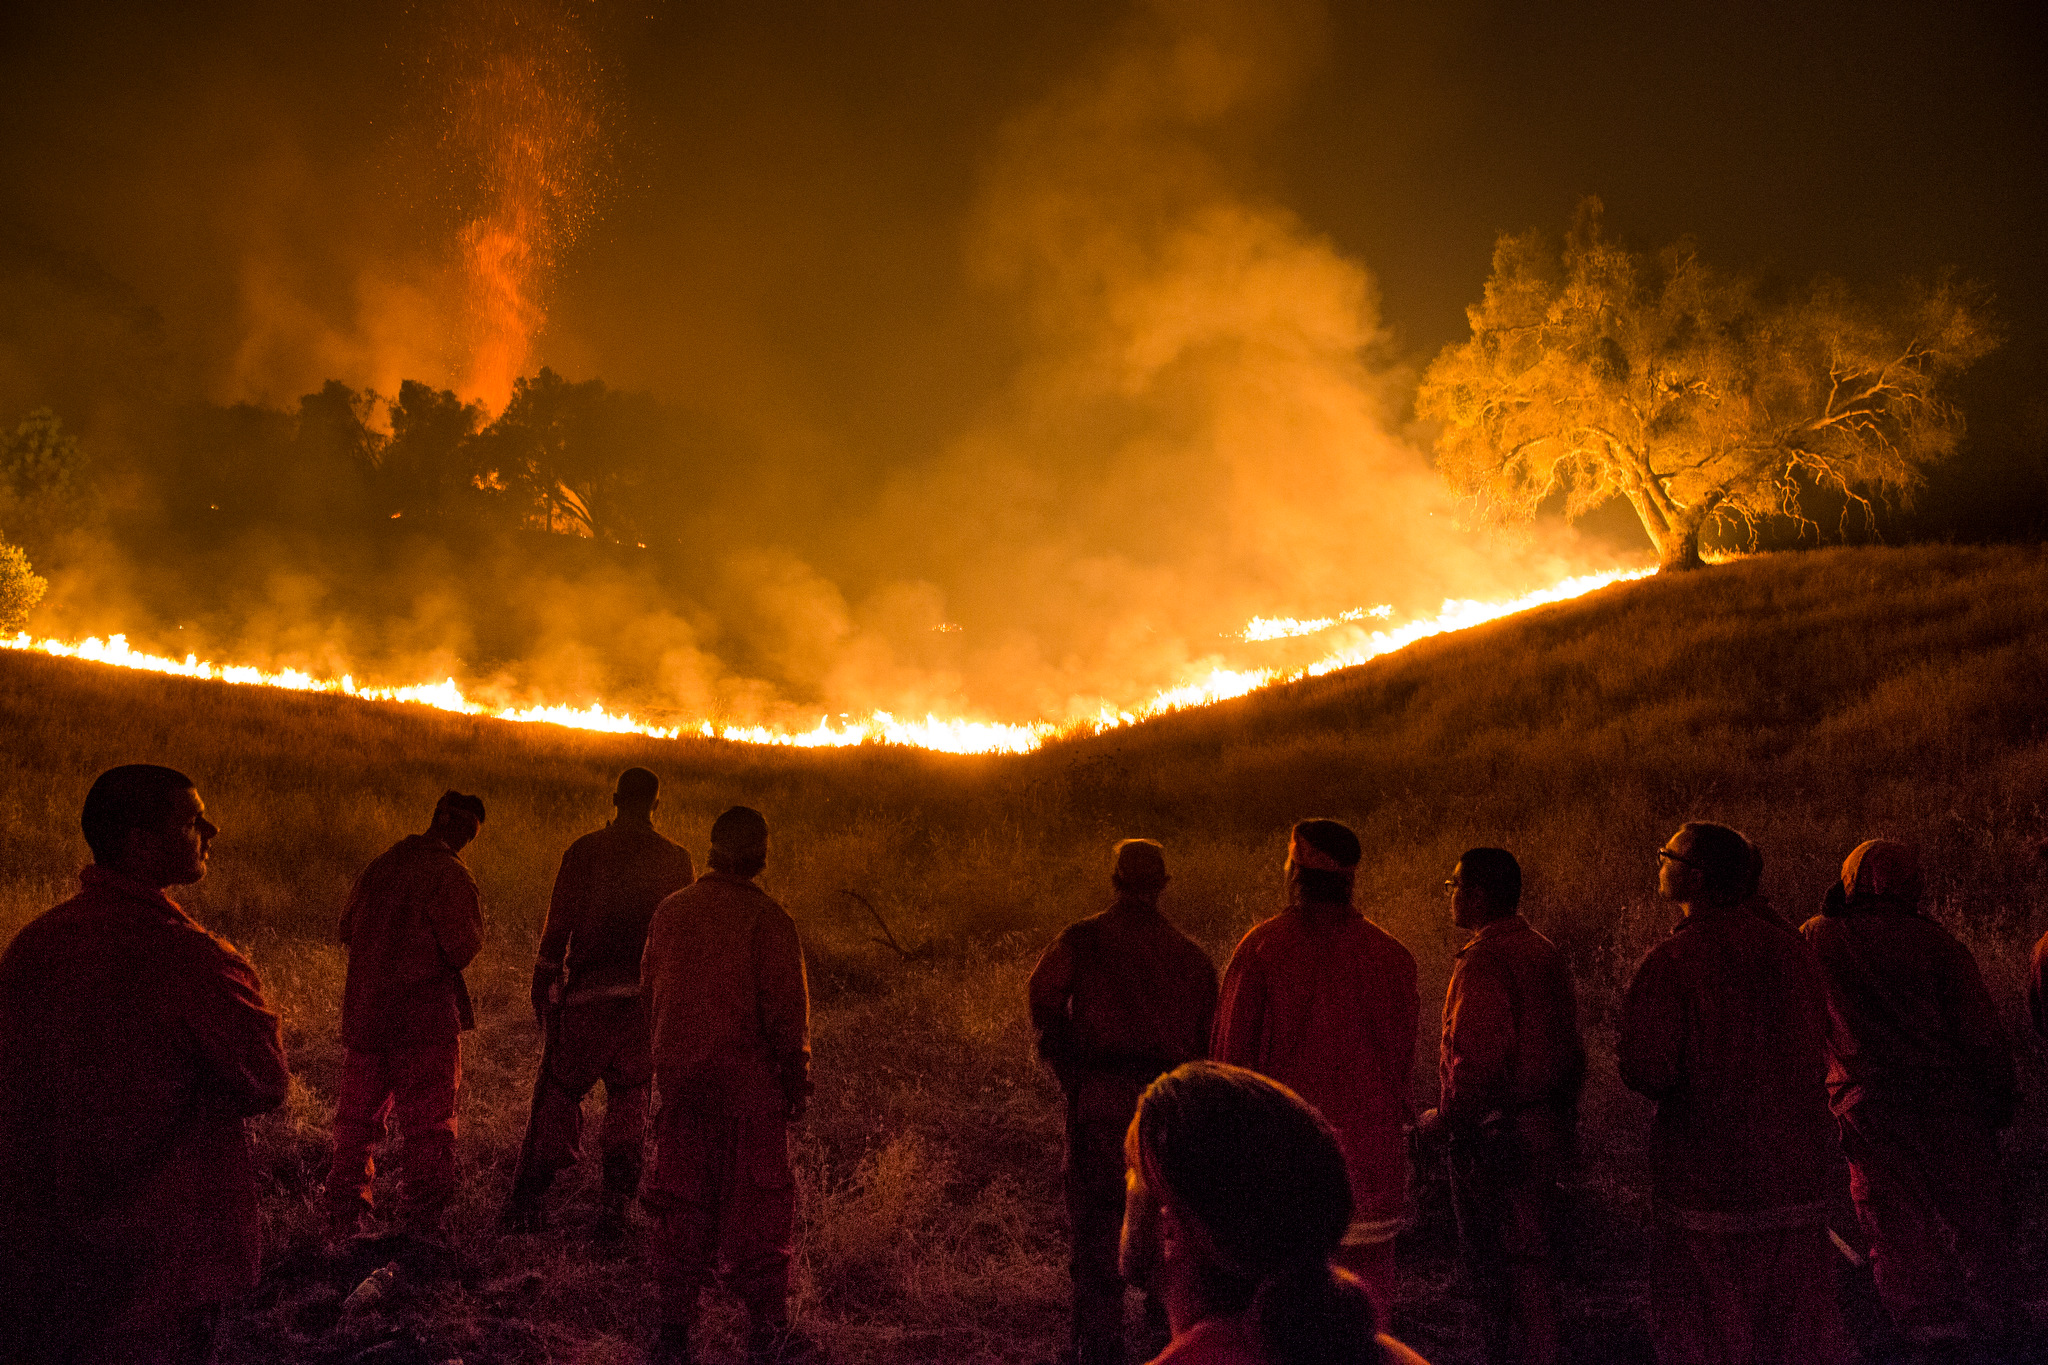 The Antelope convict crew watch as the Butte Fire approaches their fire line near San Andreas, California, September 12, 2015.